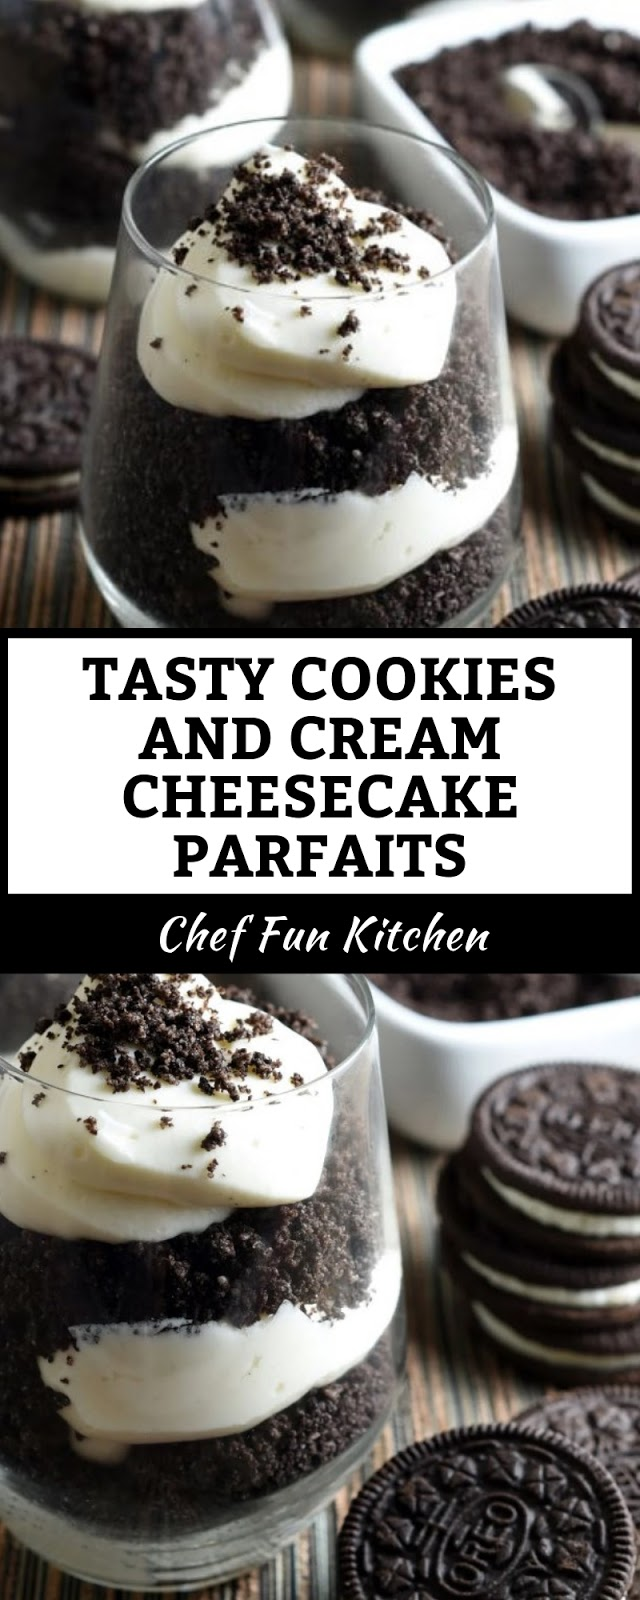 TASTY COOKIES AND CREAM CHEESECAKE PARFAITS